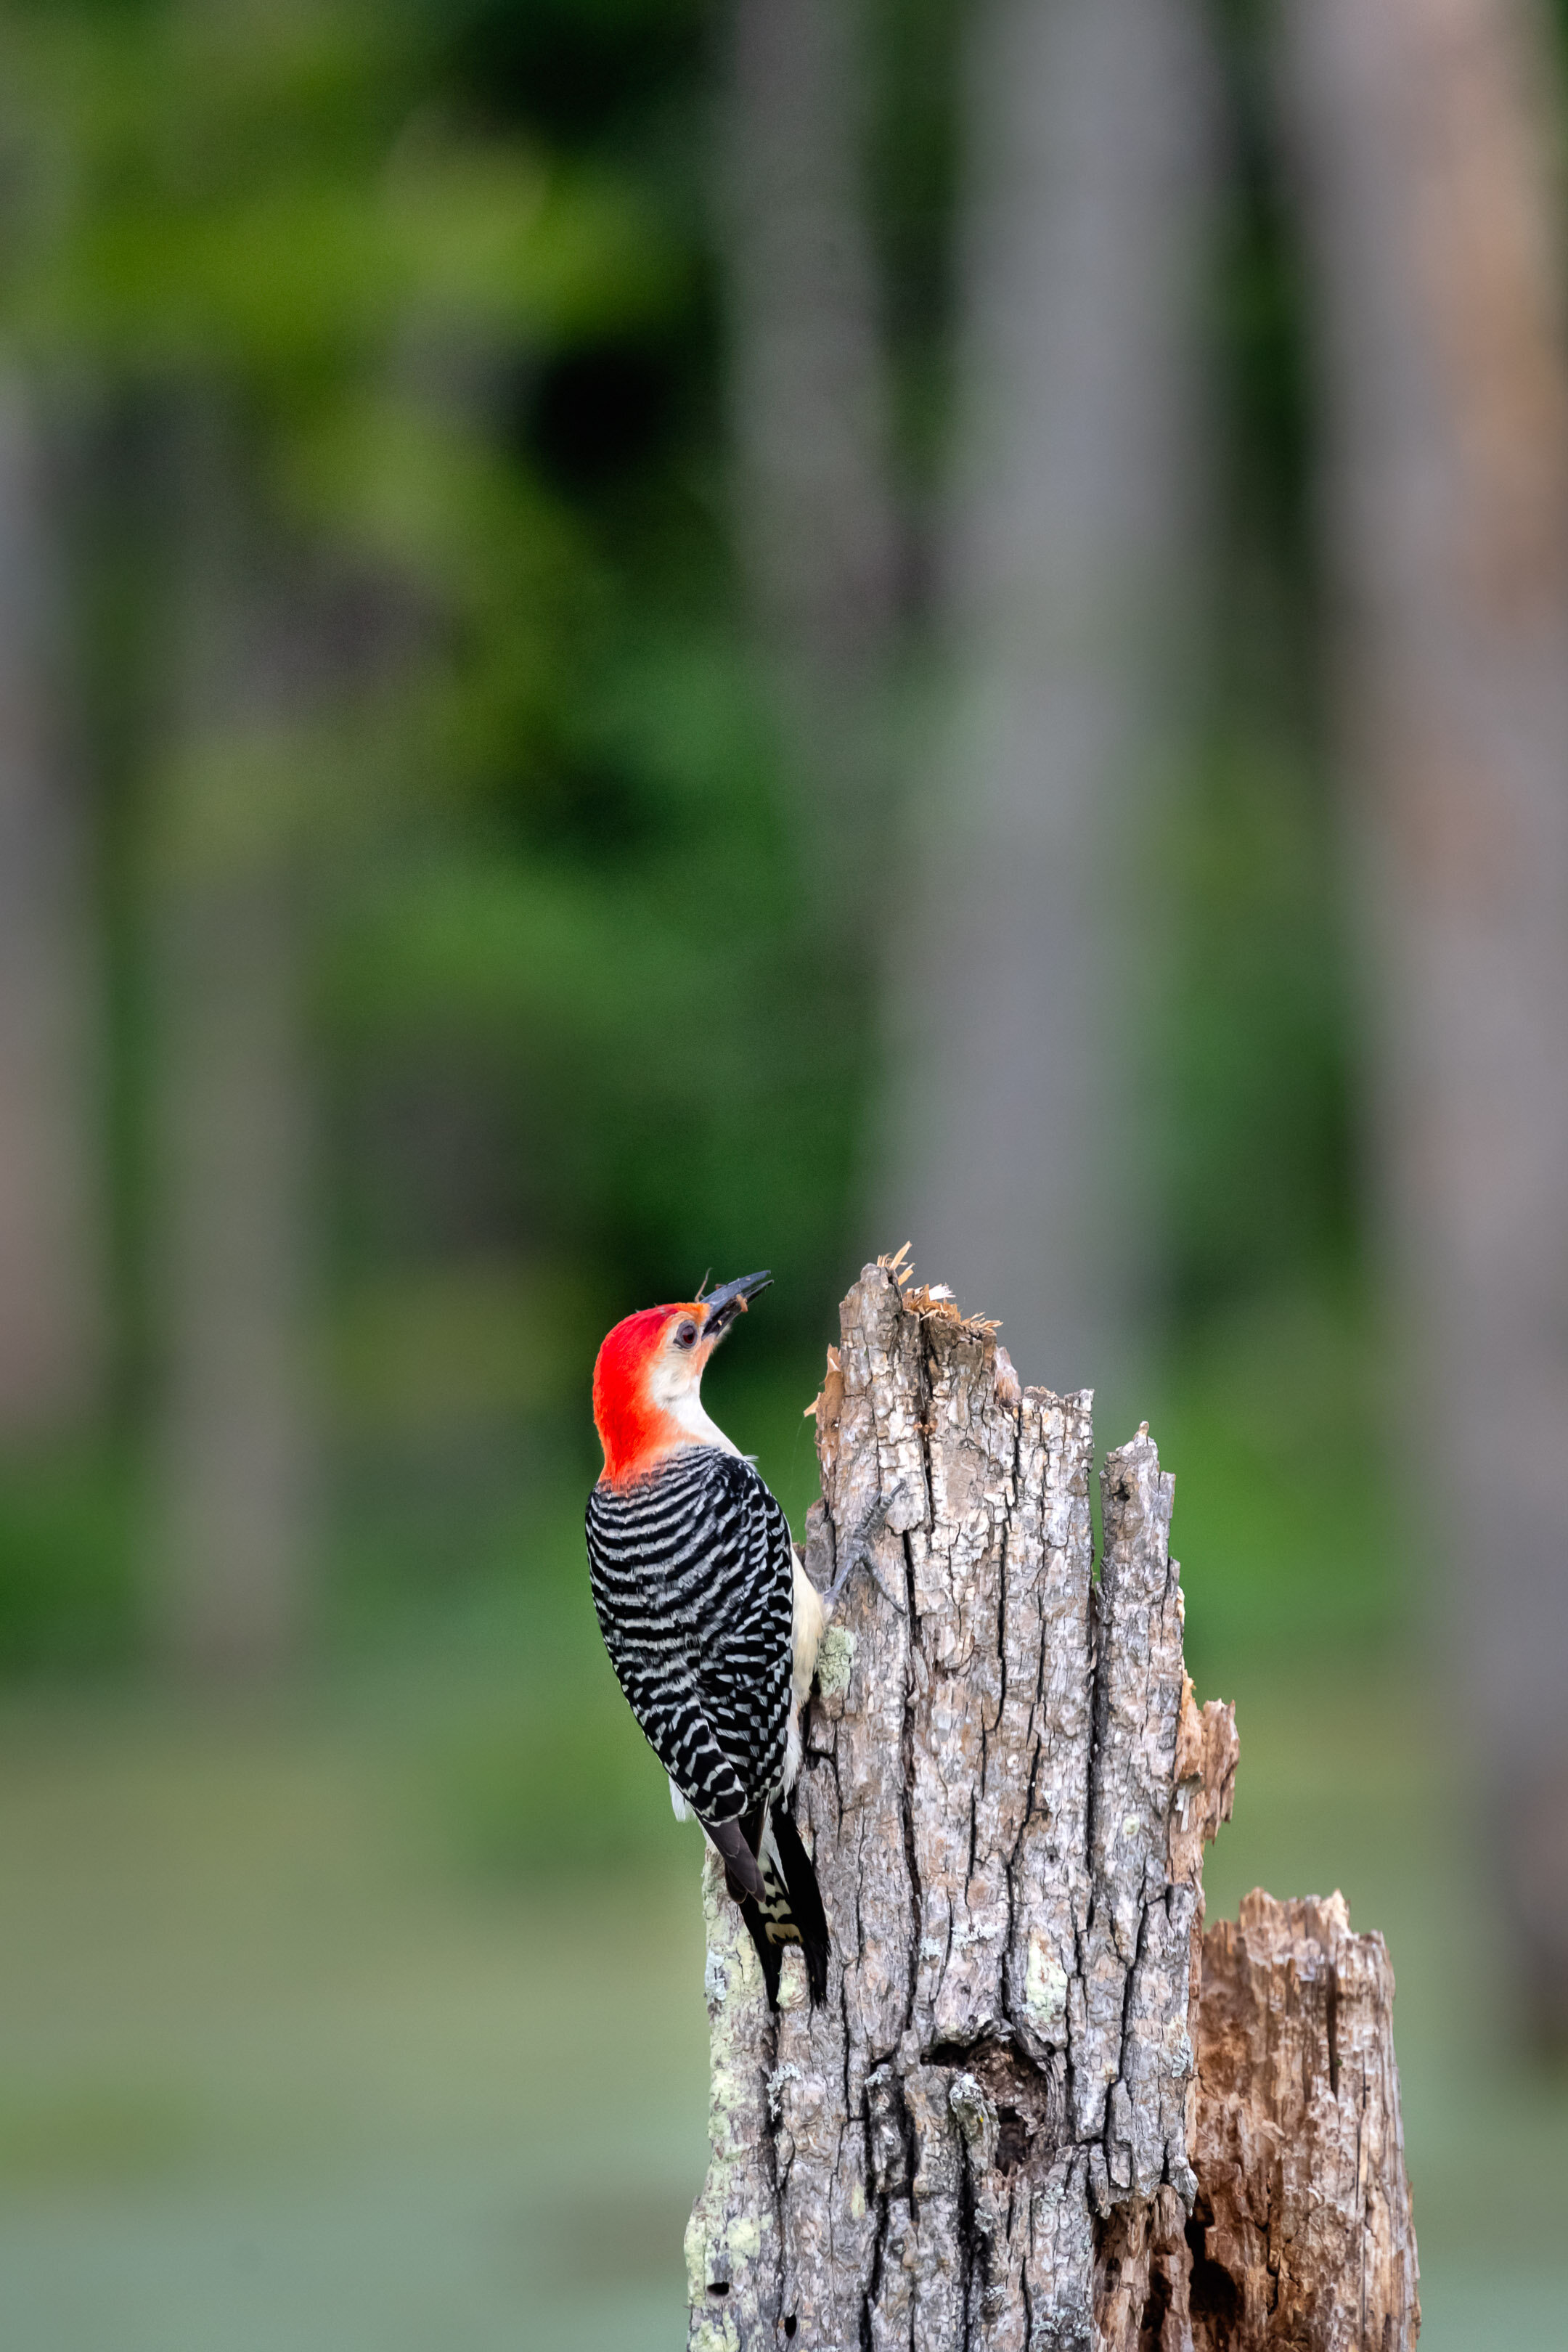 Red Bellied Woodpecker Eating a Grub